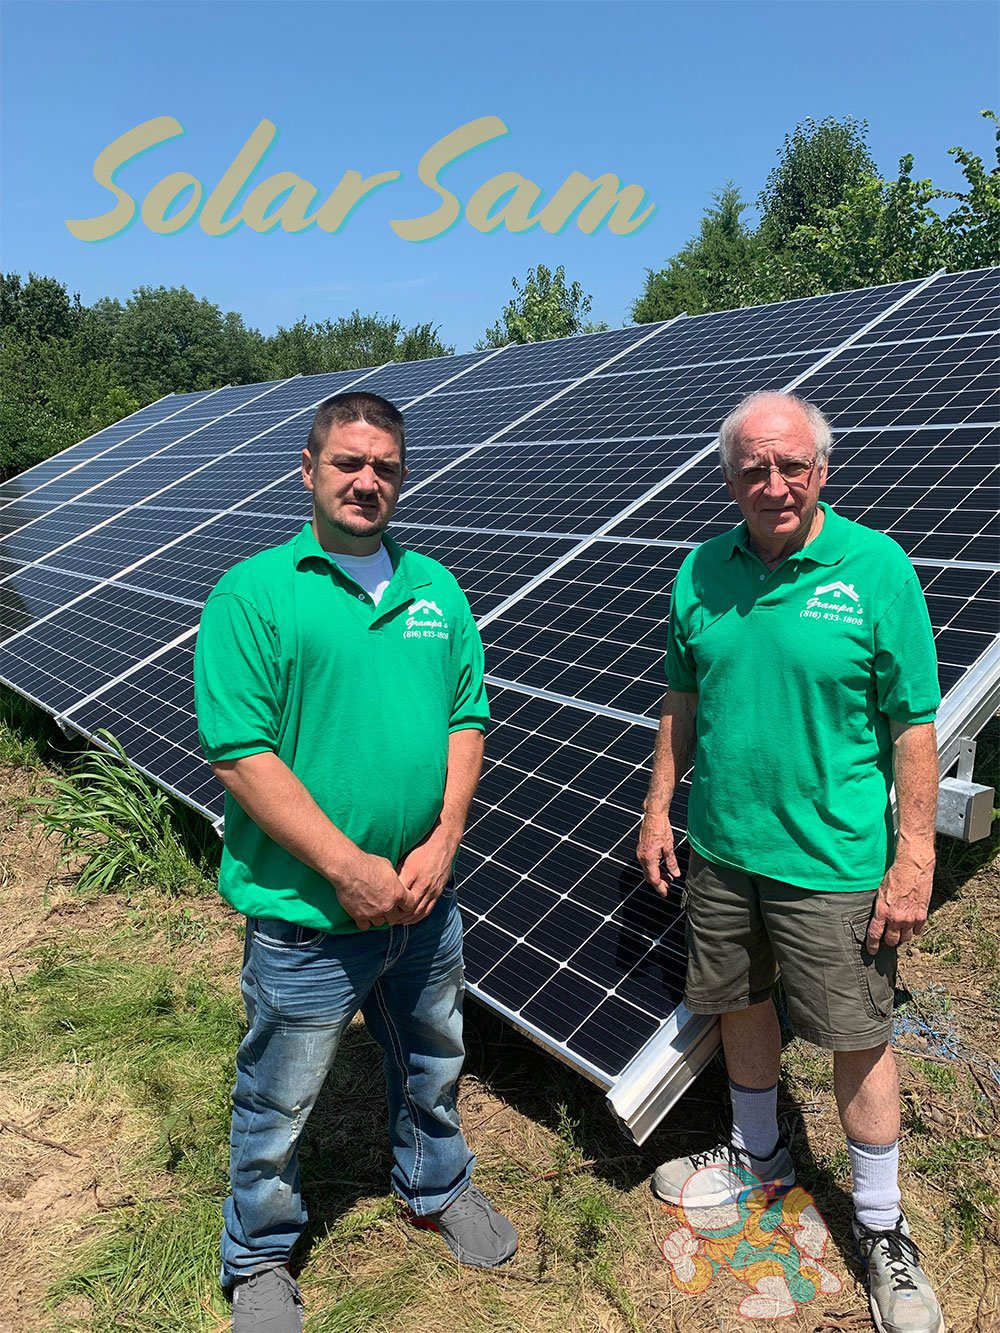 Photovoltaic Solar System Installation in Blue Springs MO by Solar Sam Professional Solar Panels Installers for Single Family House Ground Mount